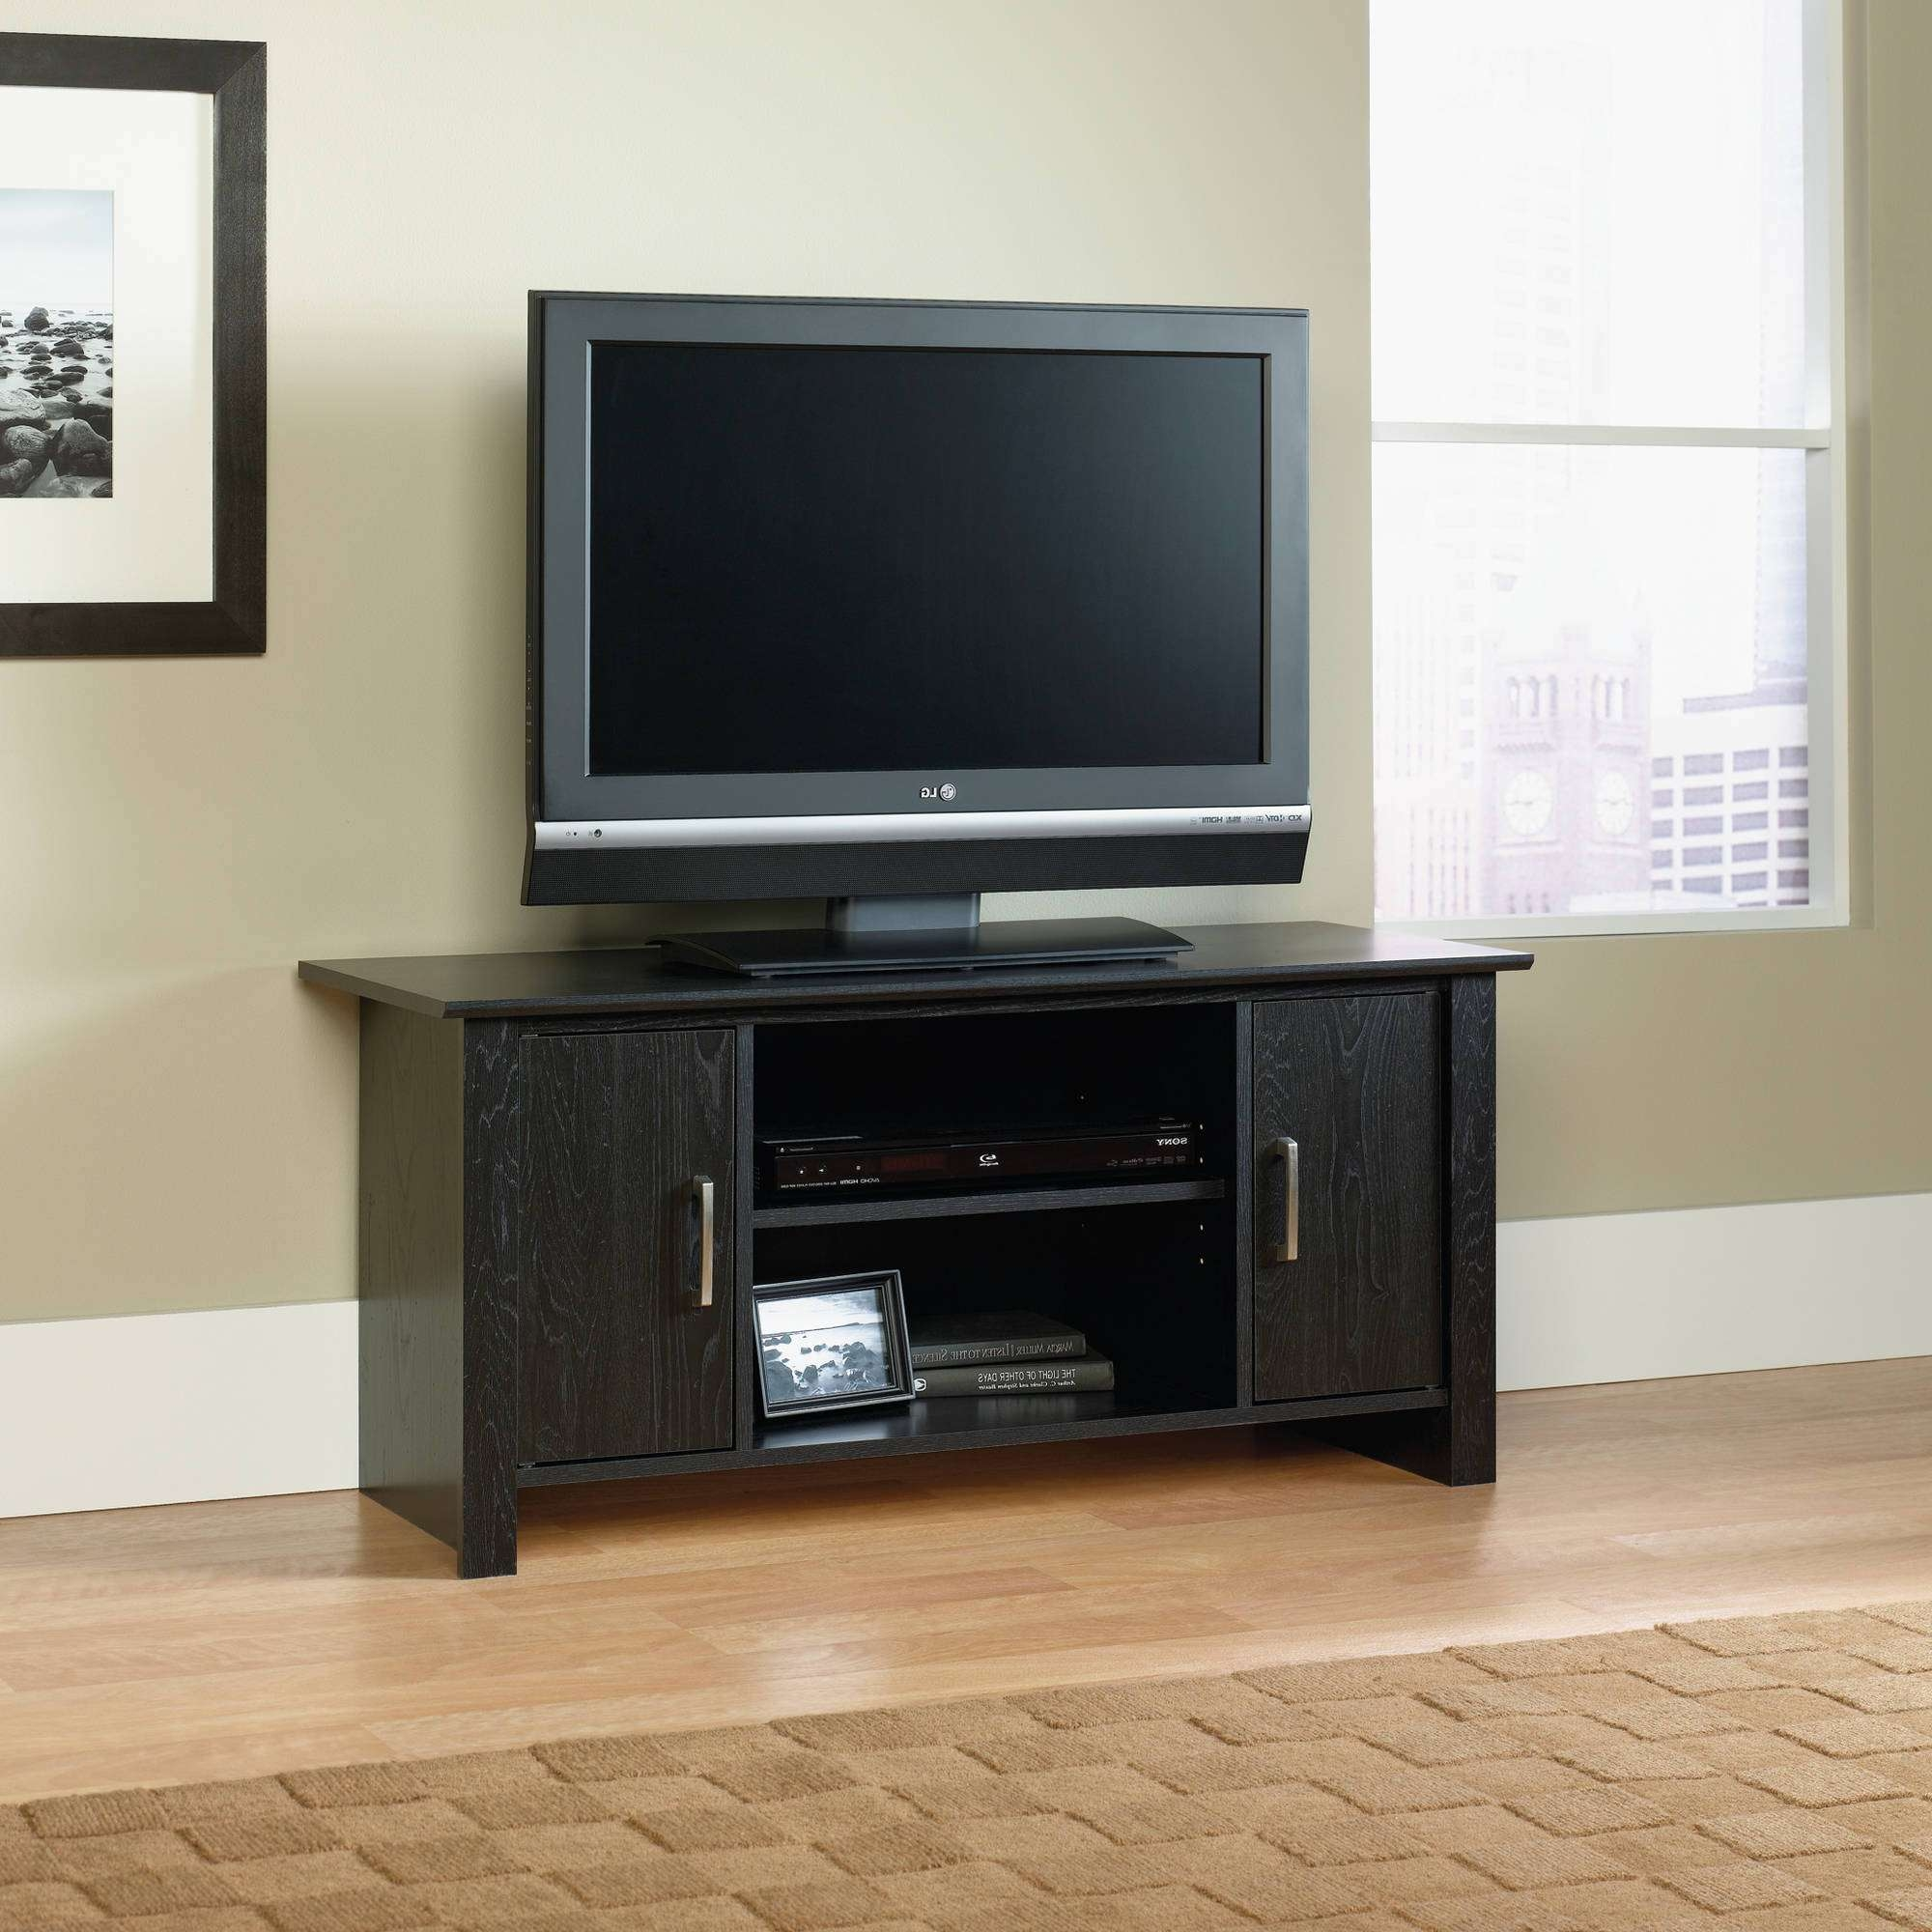 Tv Stands – Walmart For Stand And Deliver Tv Stands (View 17 of 20)